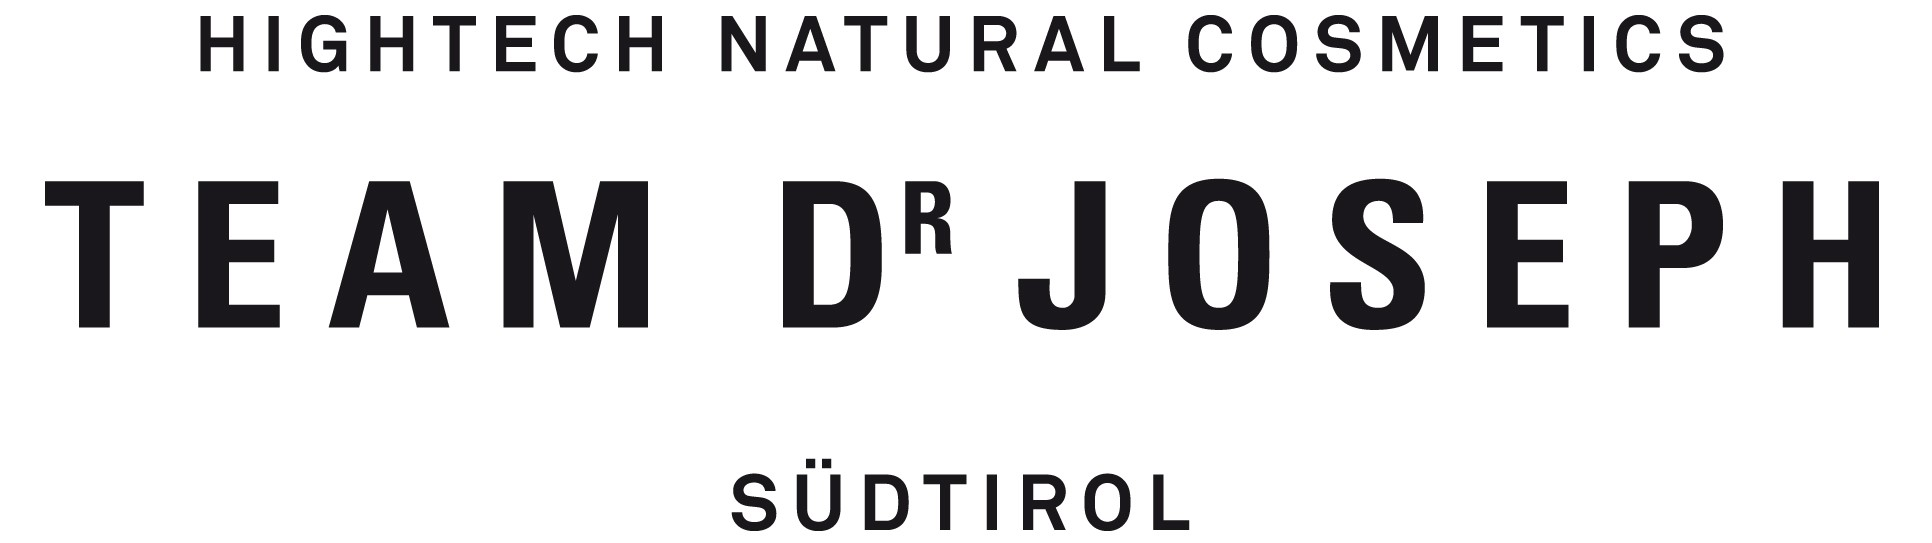 TEAM DR JOSEPH – Hightech Natural Cosmetics